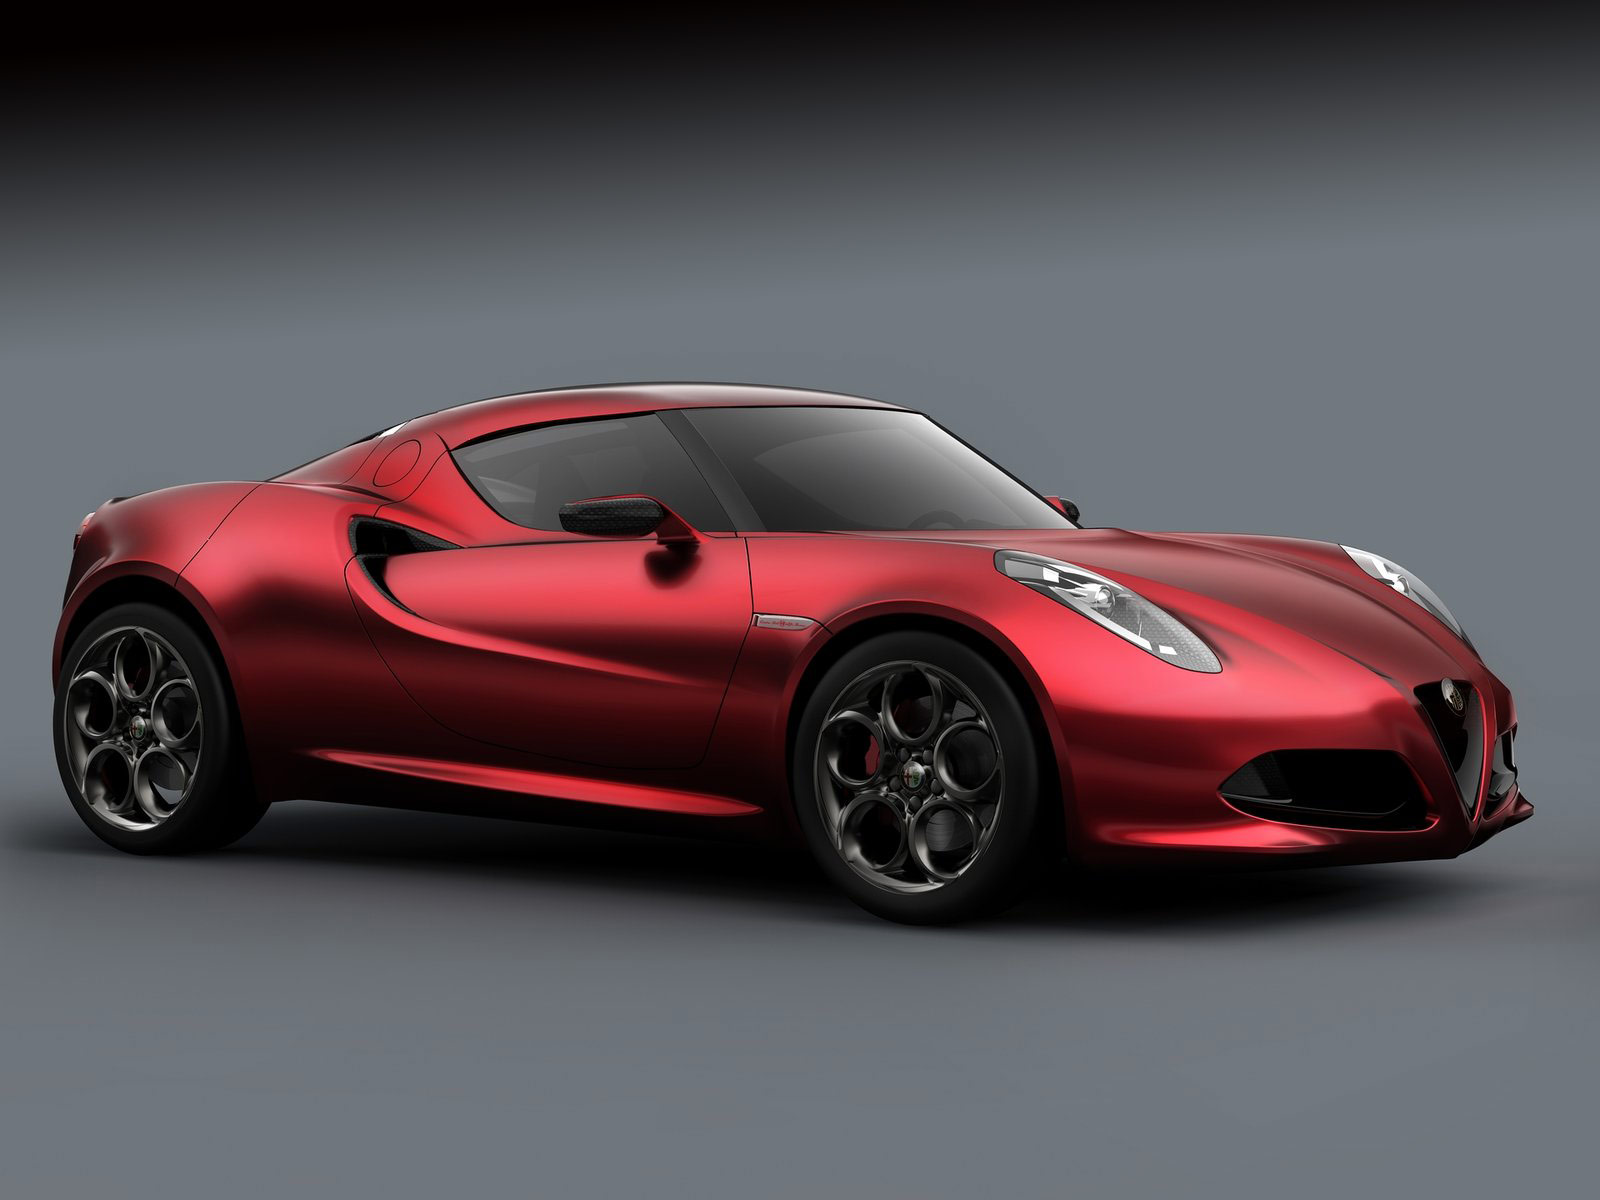 2011 alfa romeo 4c concept car desktop wallpapers. Black Bedroom Furniture Sets. Home Design Ideas